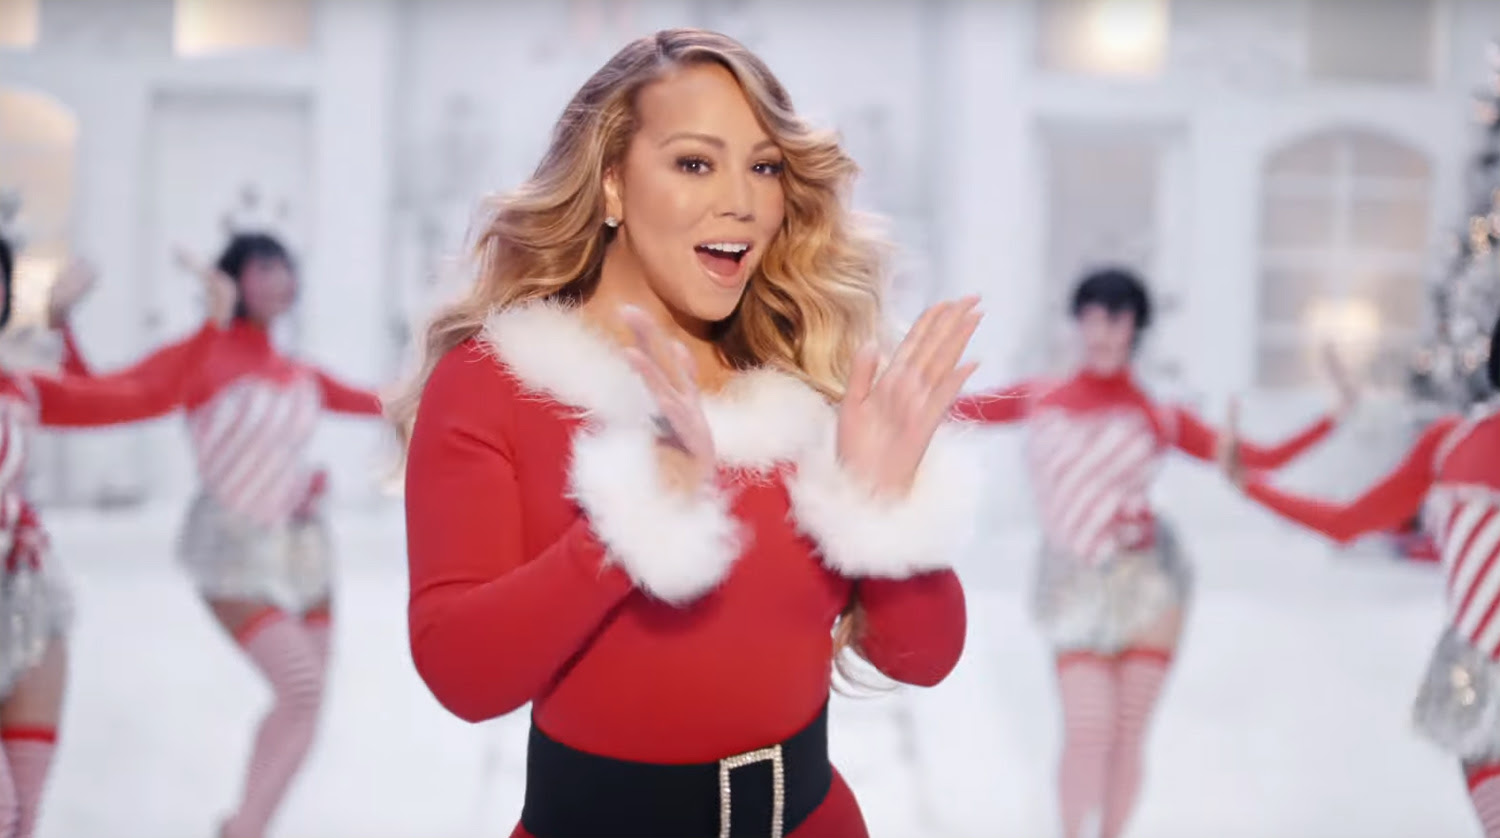 Tik Tok Song All I Want For Christmas Is You - tiktok song 2020